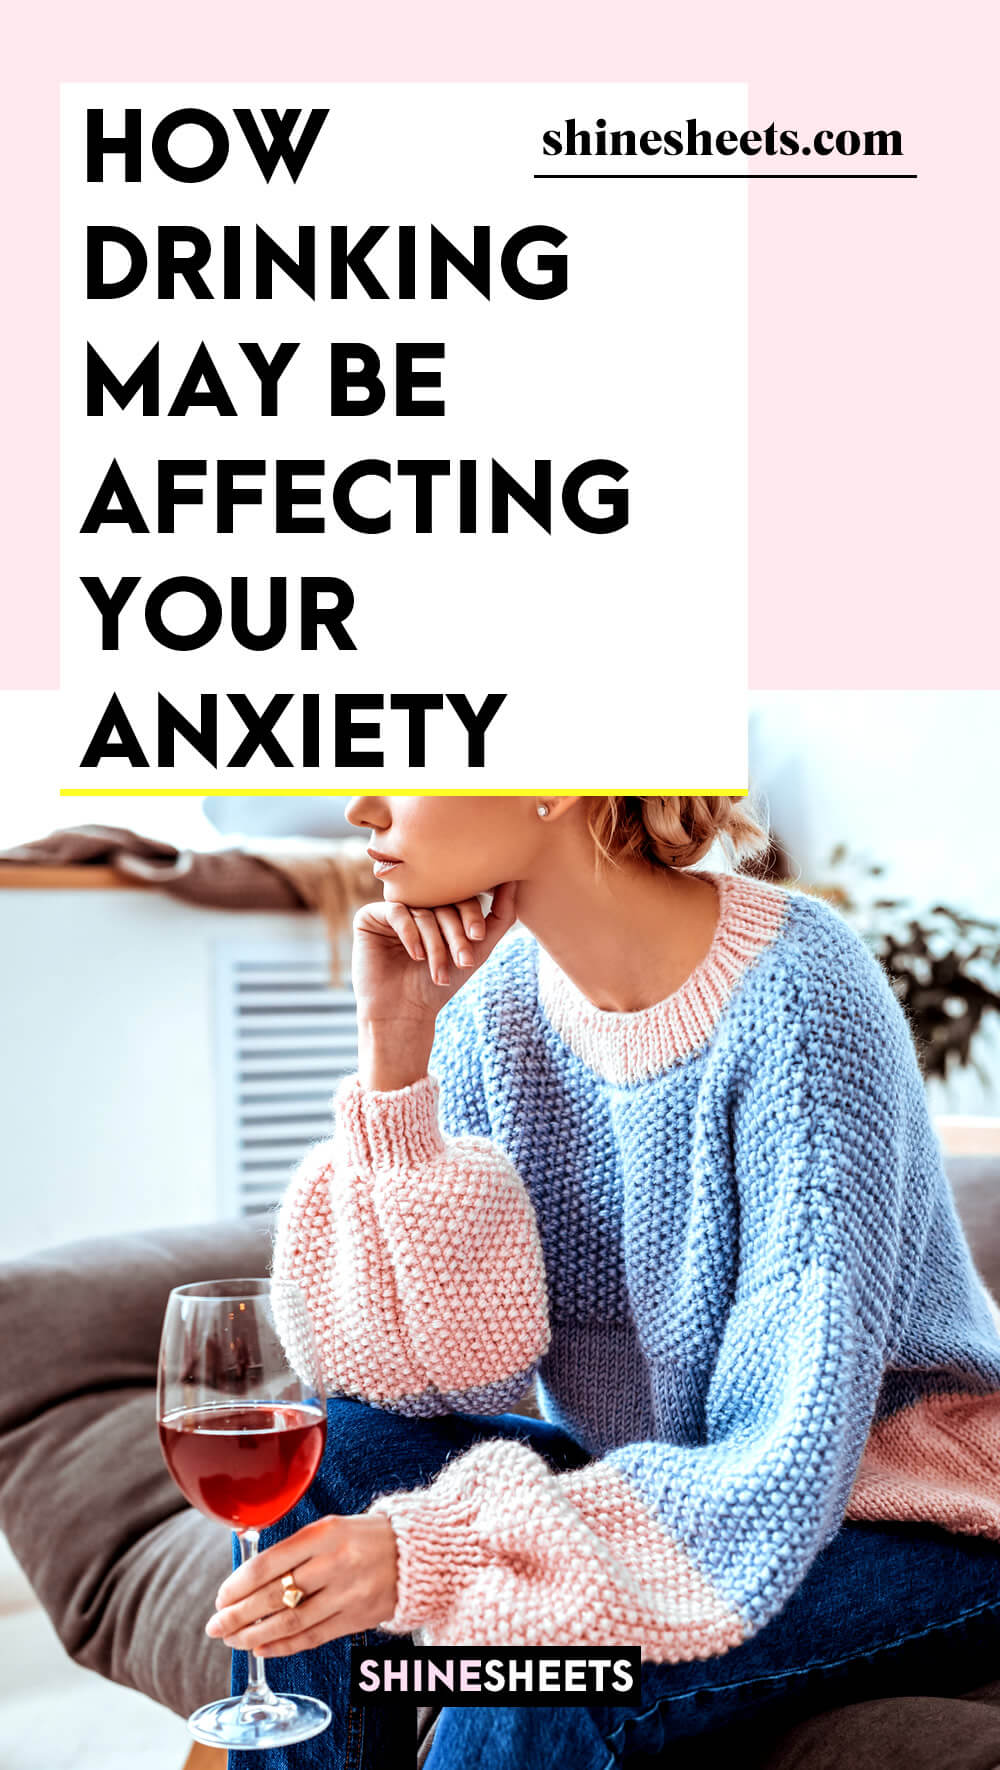 woman drinking wine trying to calm her anxiety